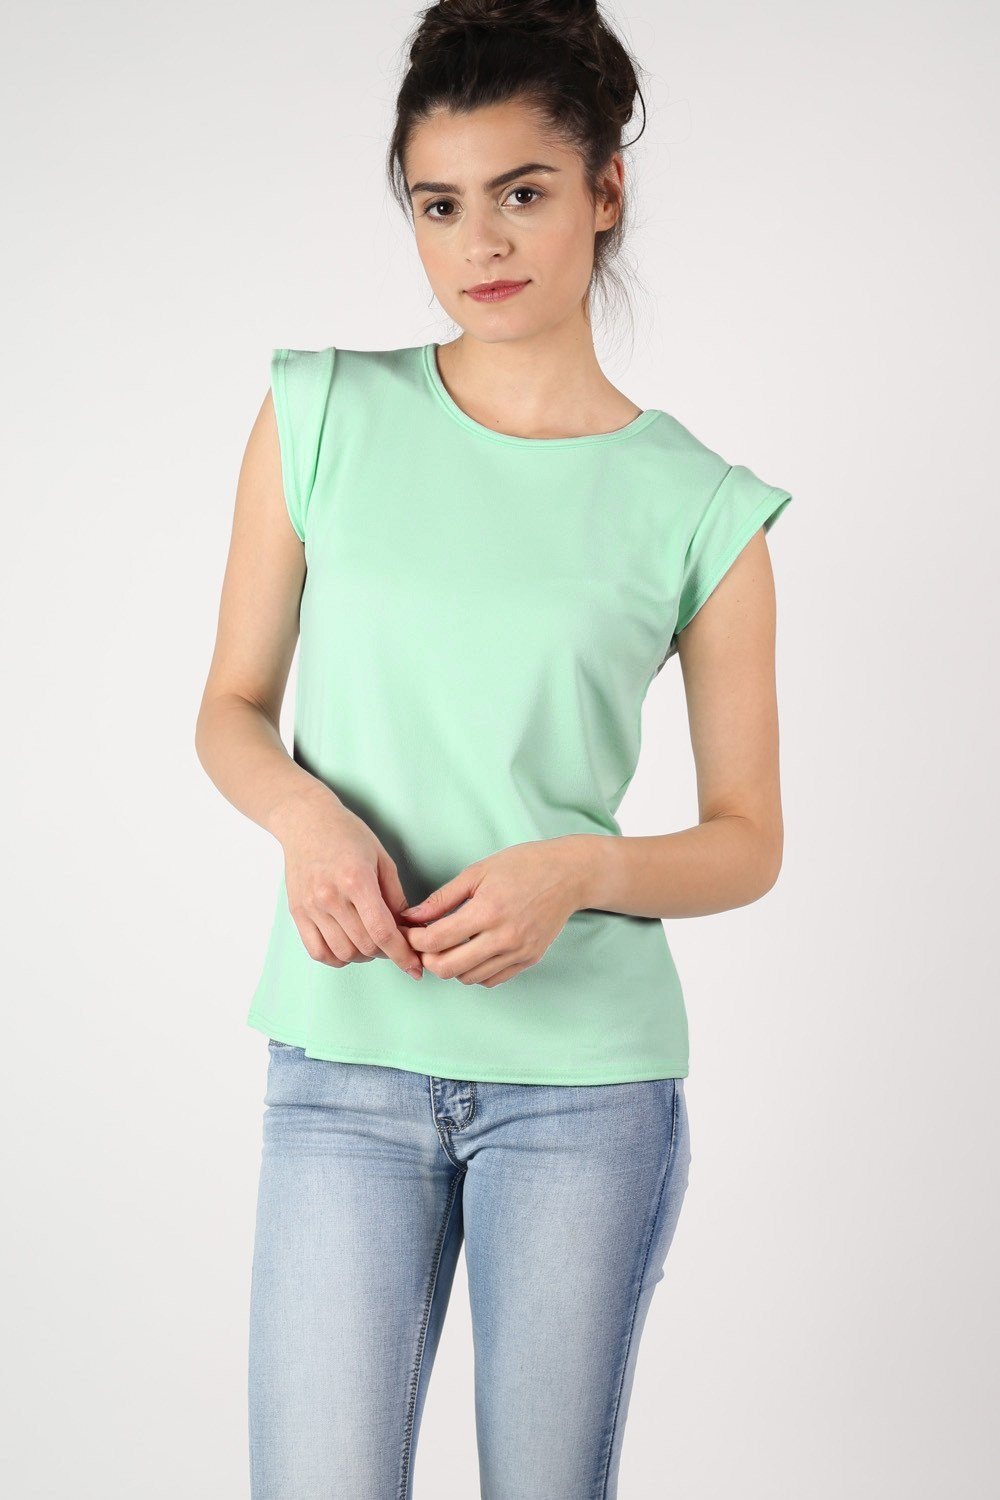 Fluted Cap Sleeve Top in Mint Green 0